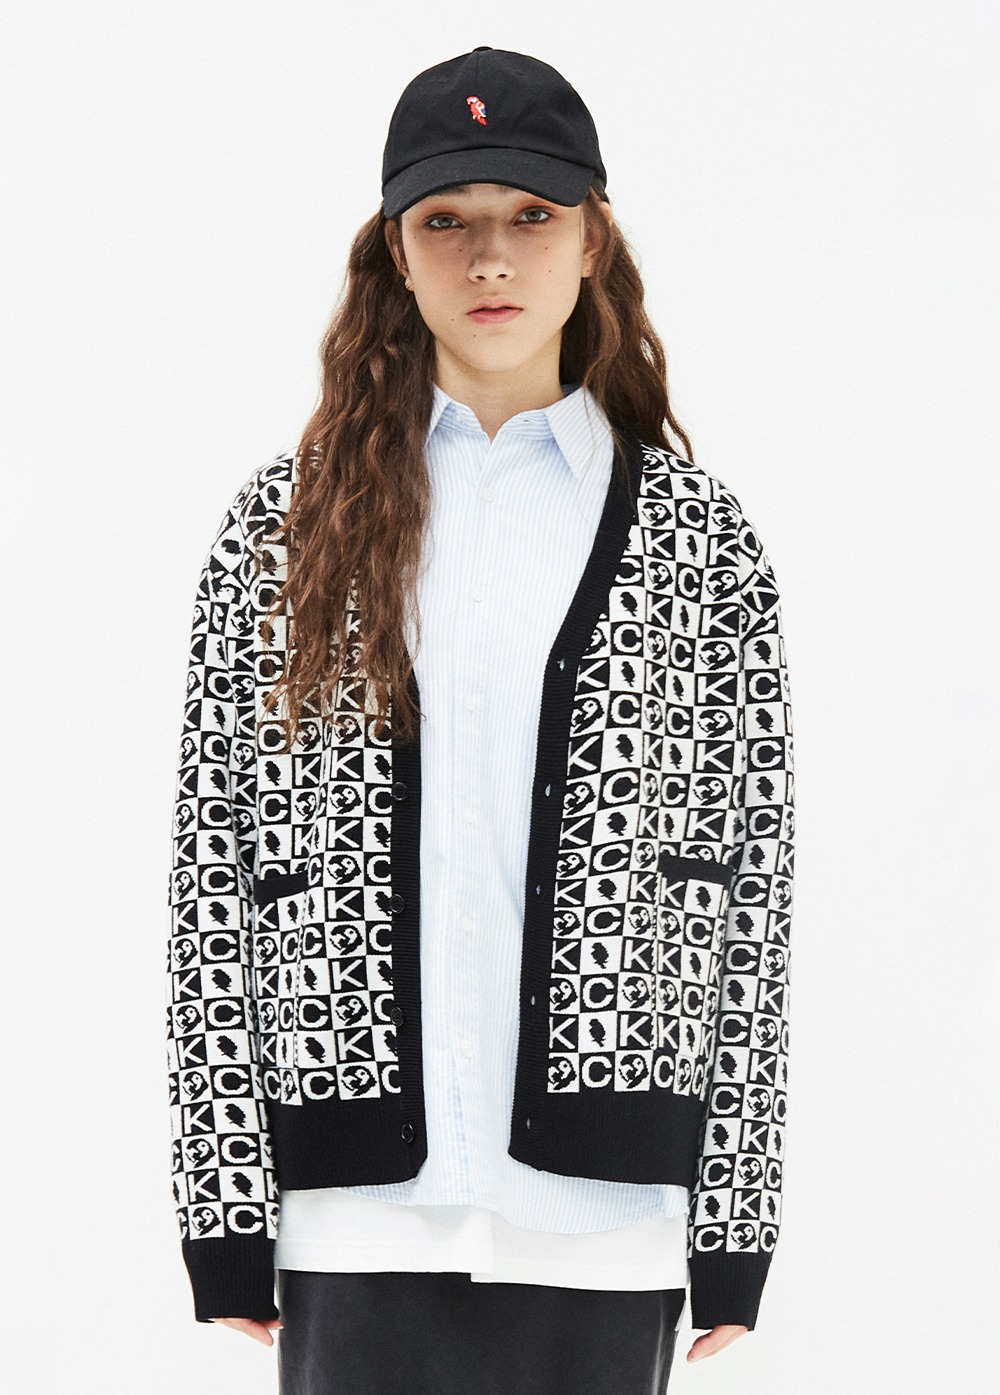 KANCO PATTERN CARDIGAN black/white